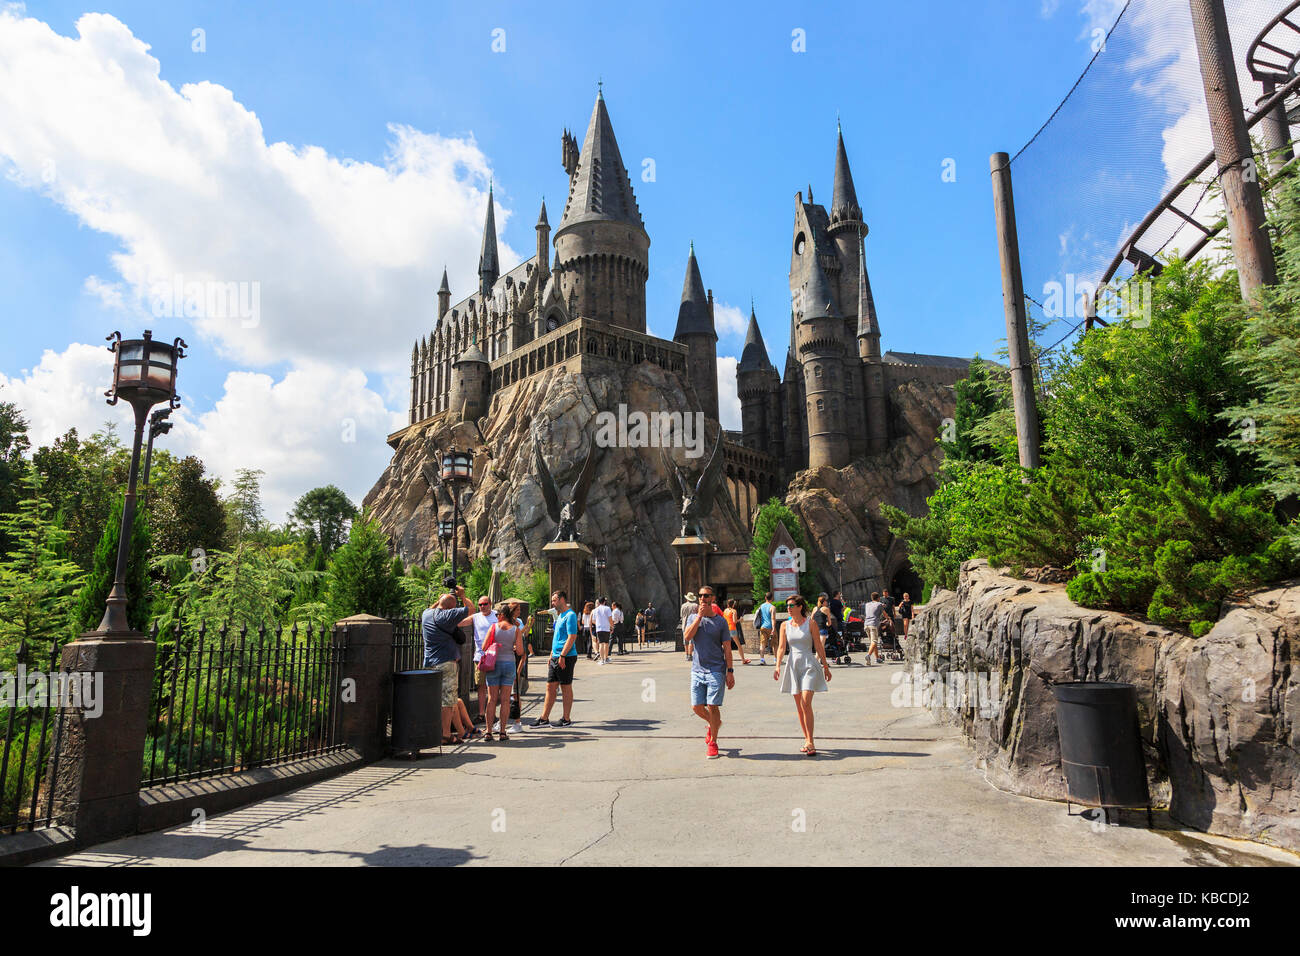 Harry Potter part of Universal Studios theme park, Orlando, Florida, USA - Stock Image